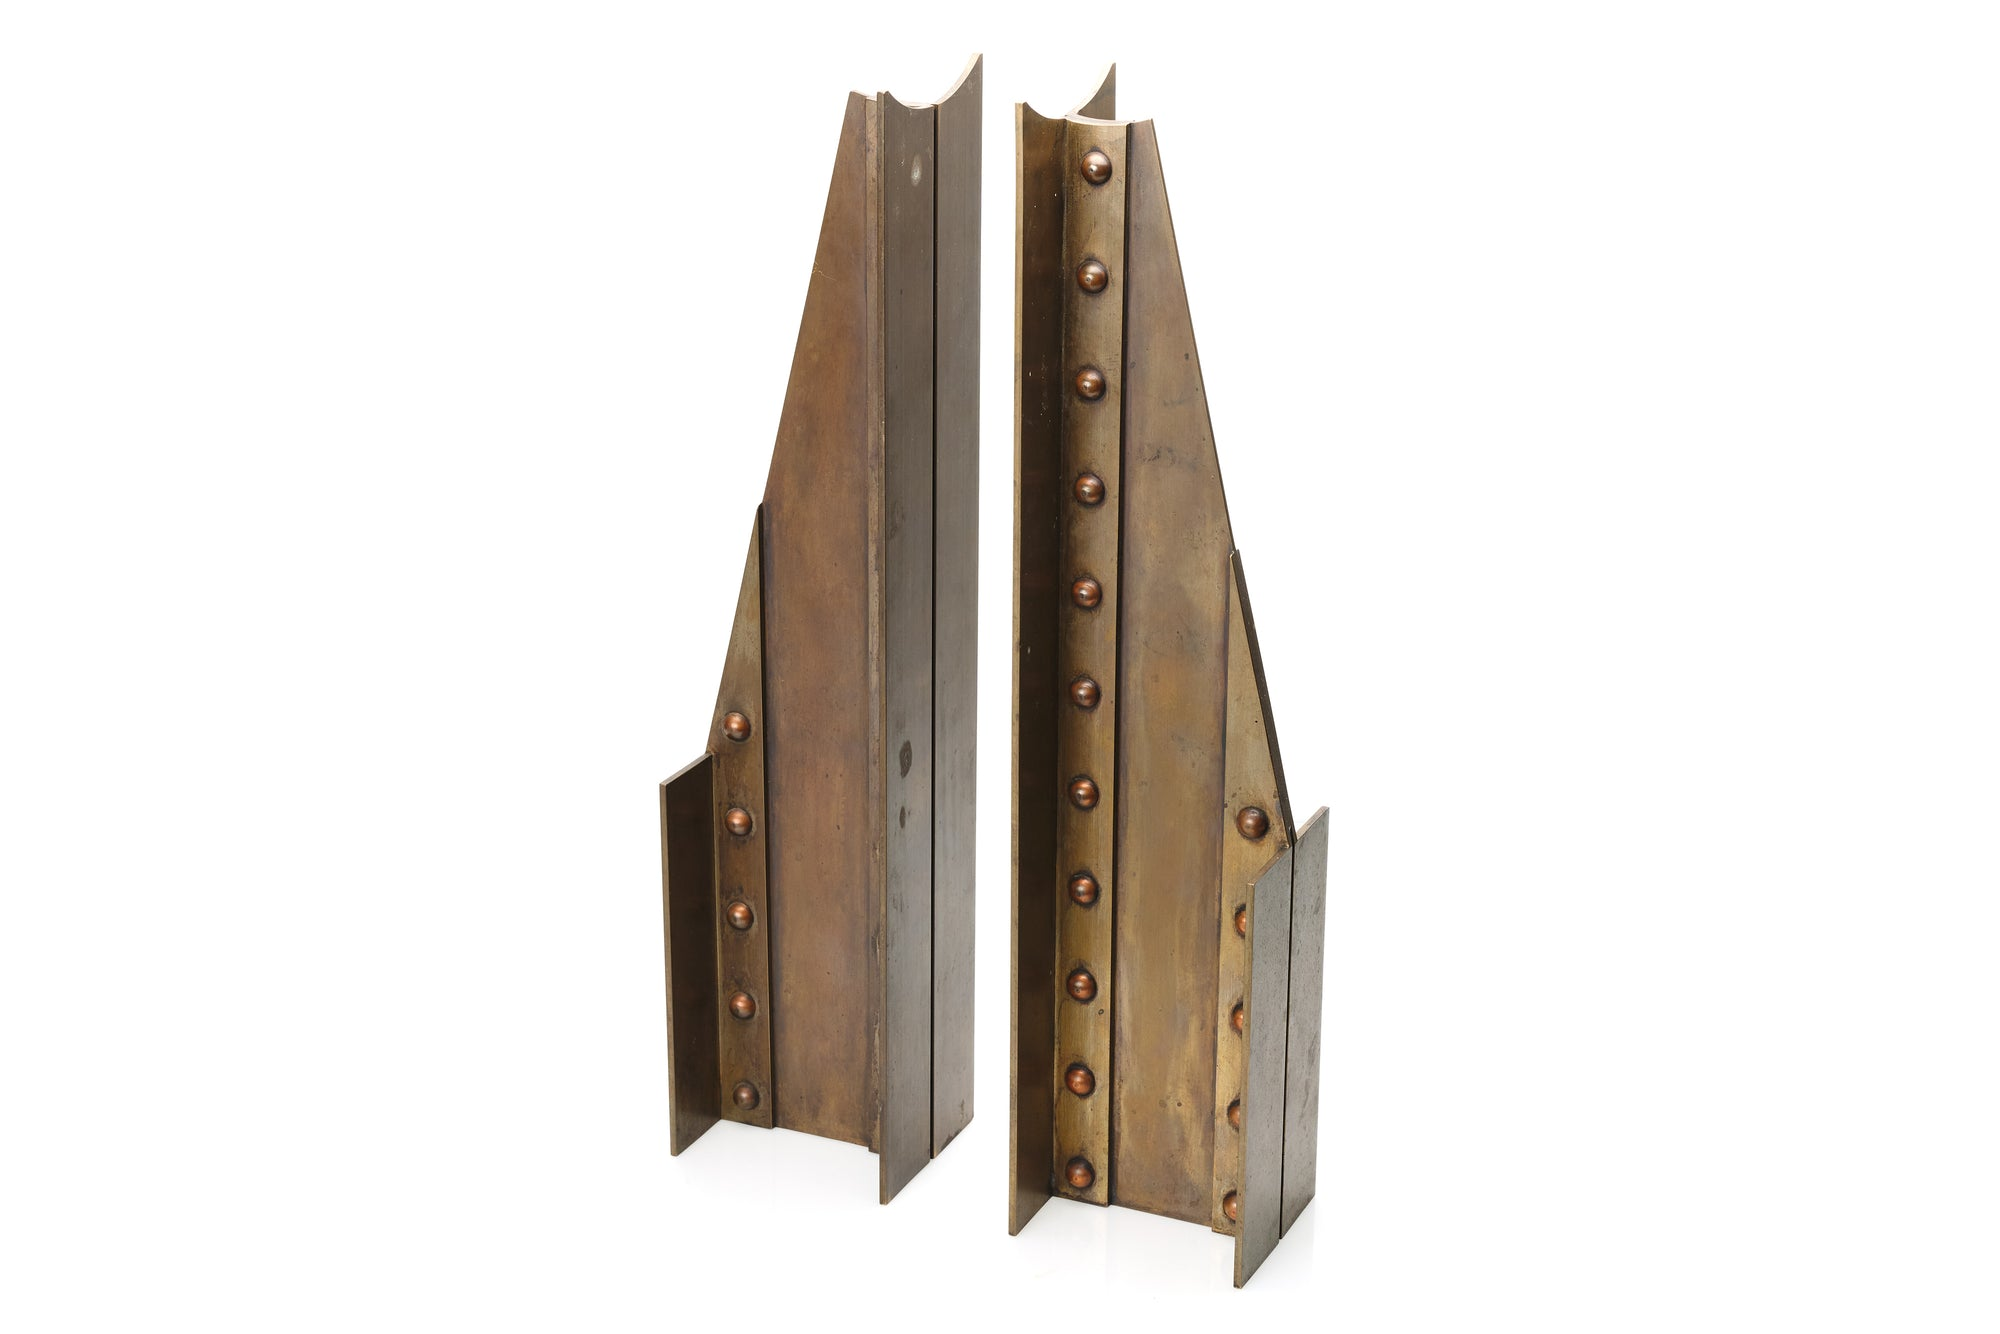 Giant Steel Girder Bookends